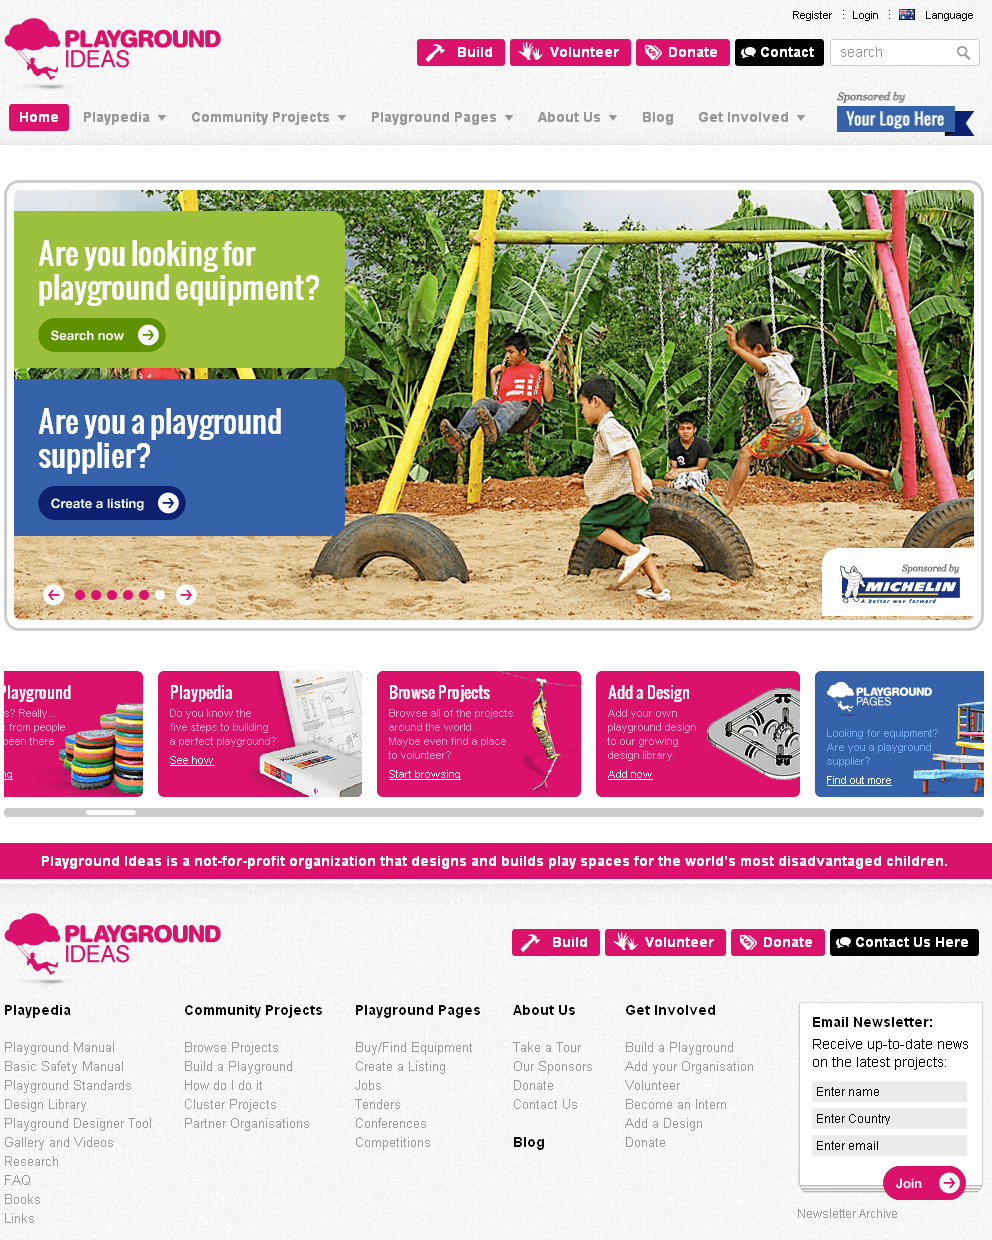 Drupal Website for NGO 'Playgroundideas' – Playground Service